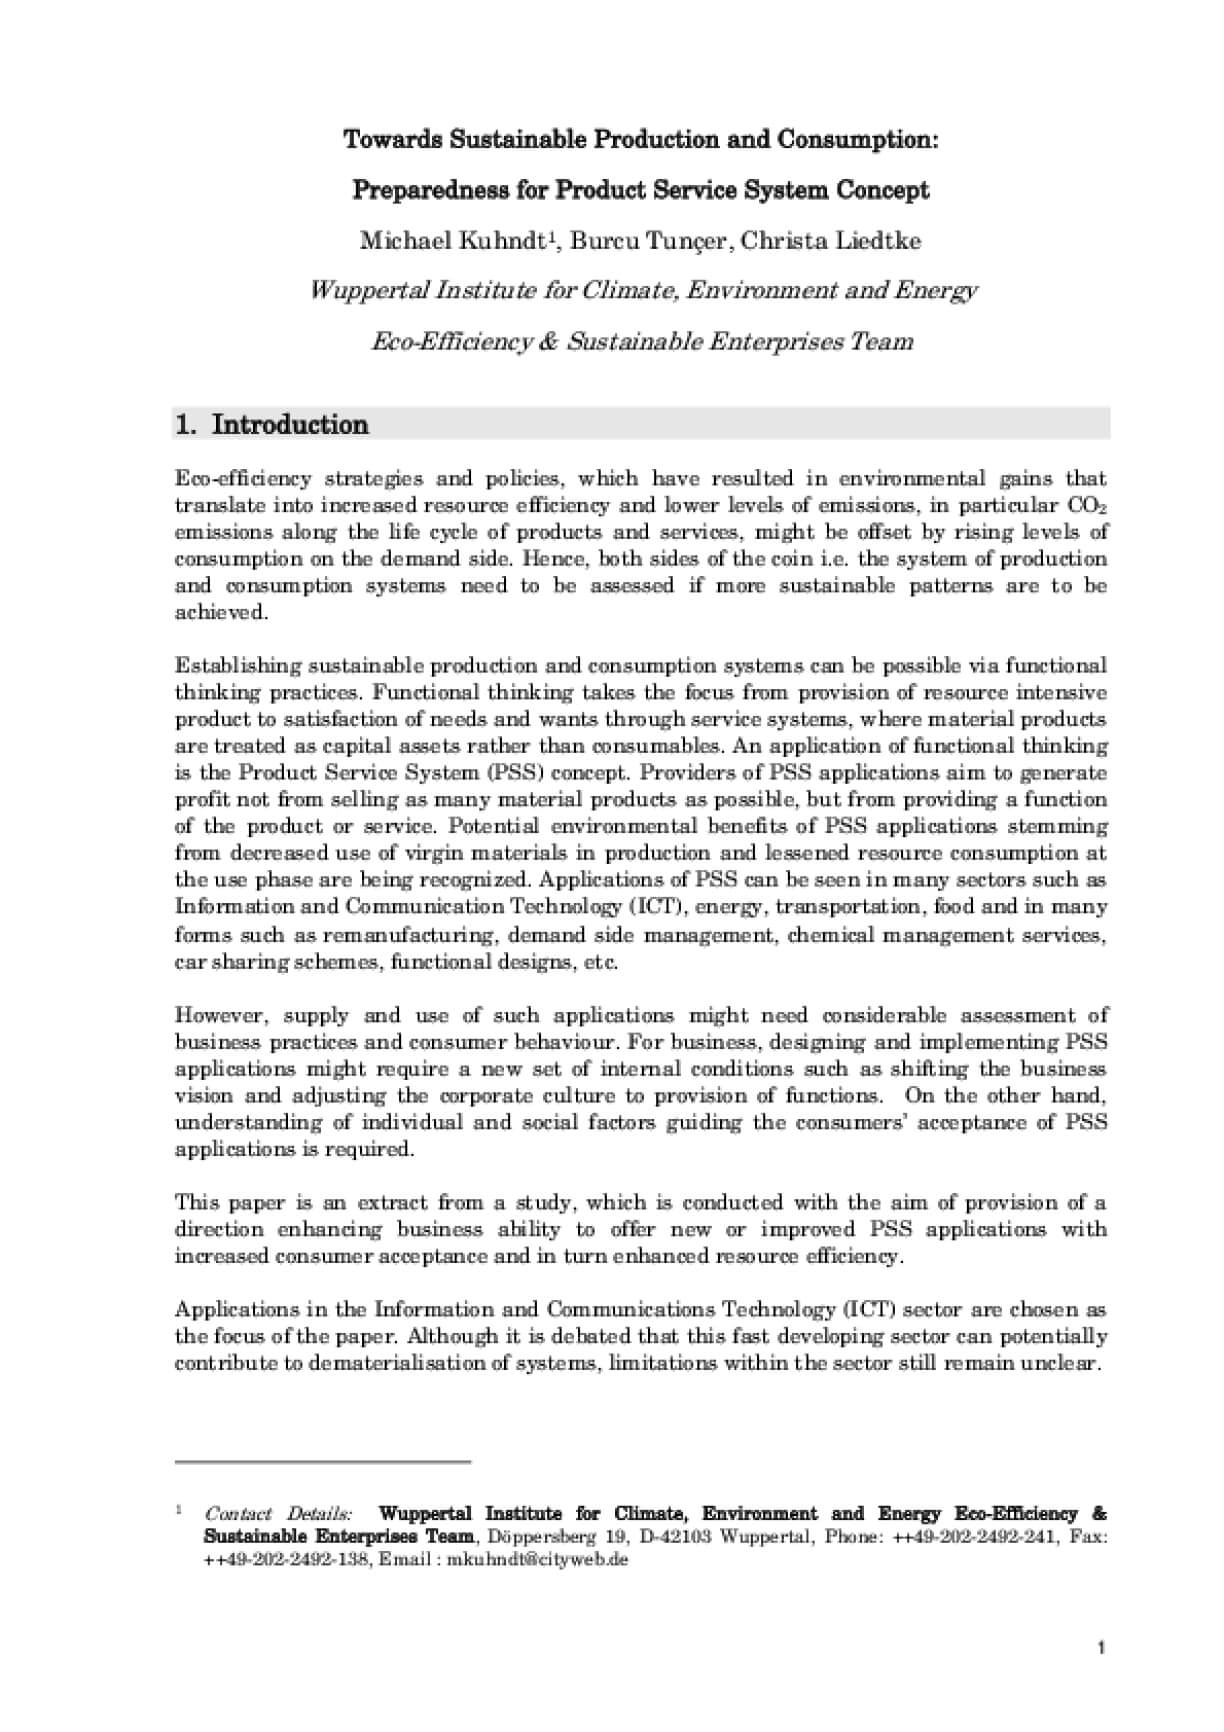 Towards Sustainable Production and Consumption: Preparedness for Product Service System Concept